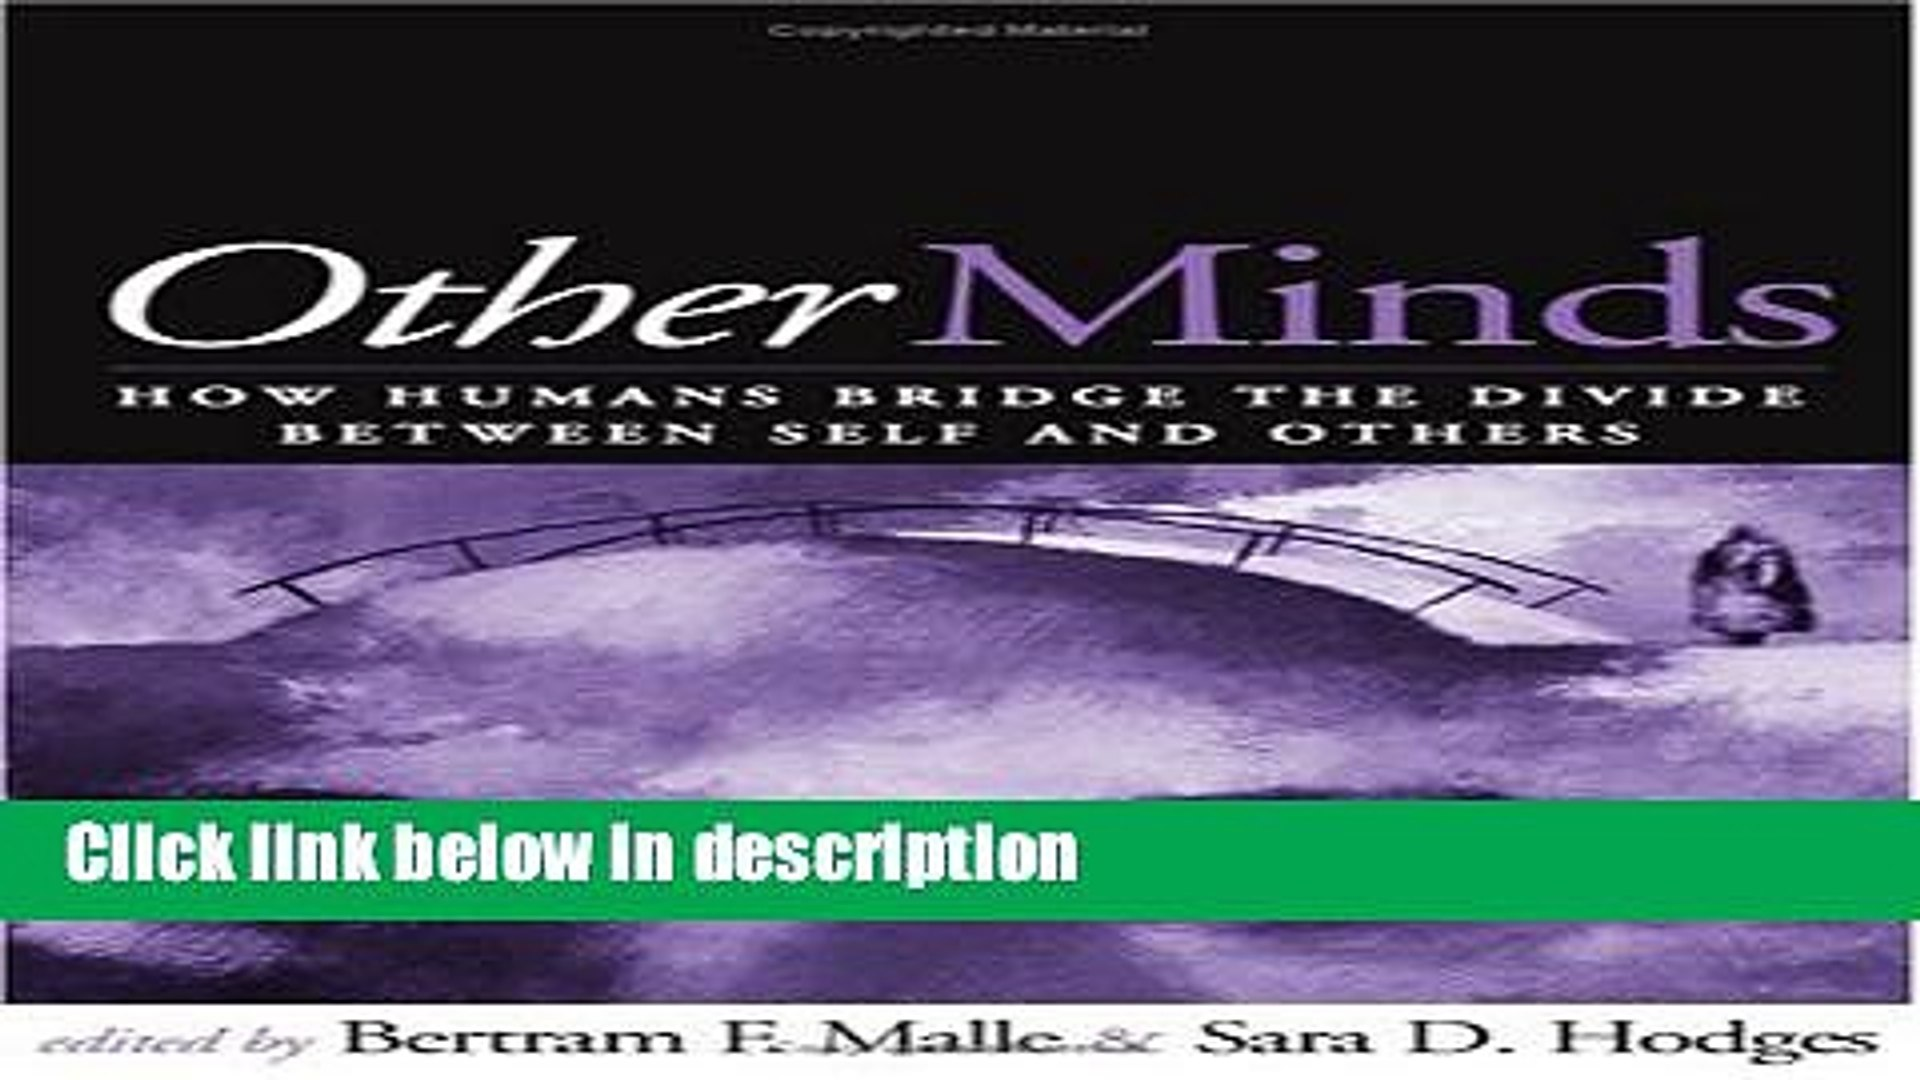 Ebook Other Minds: How Humans Bridge the Divide between Self and Others Free Download